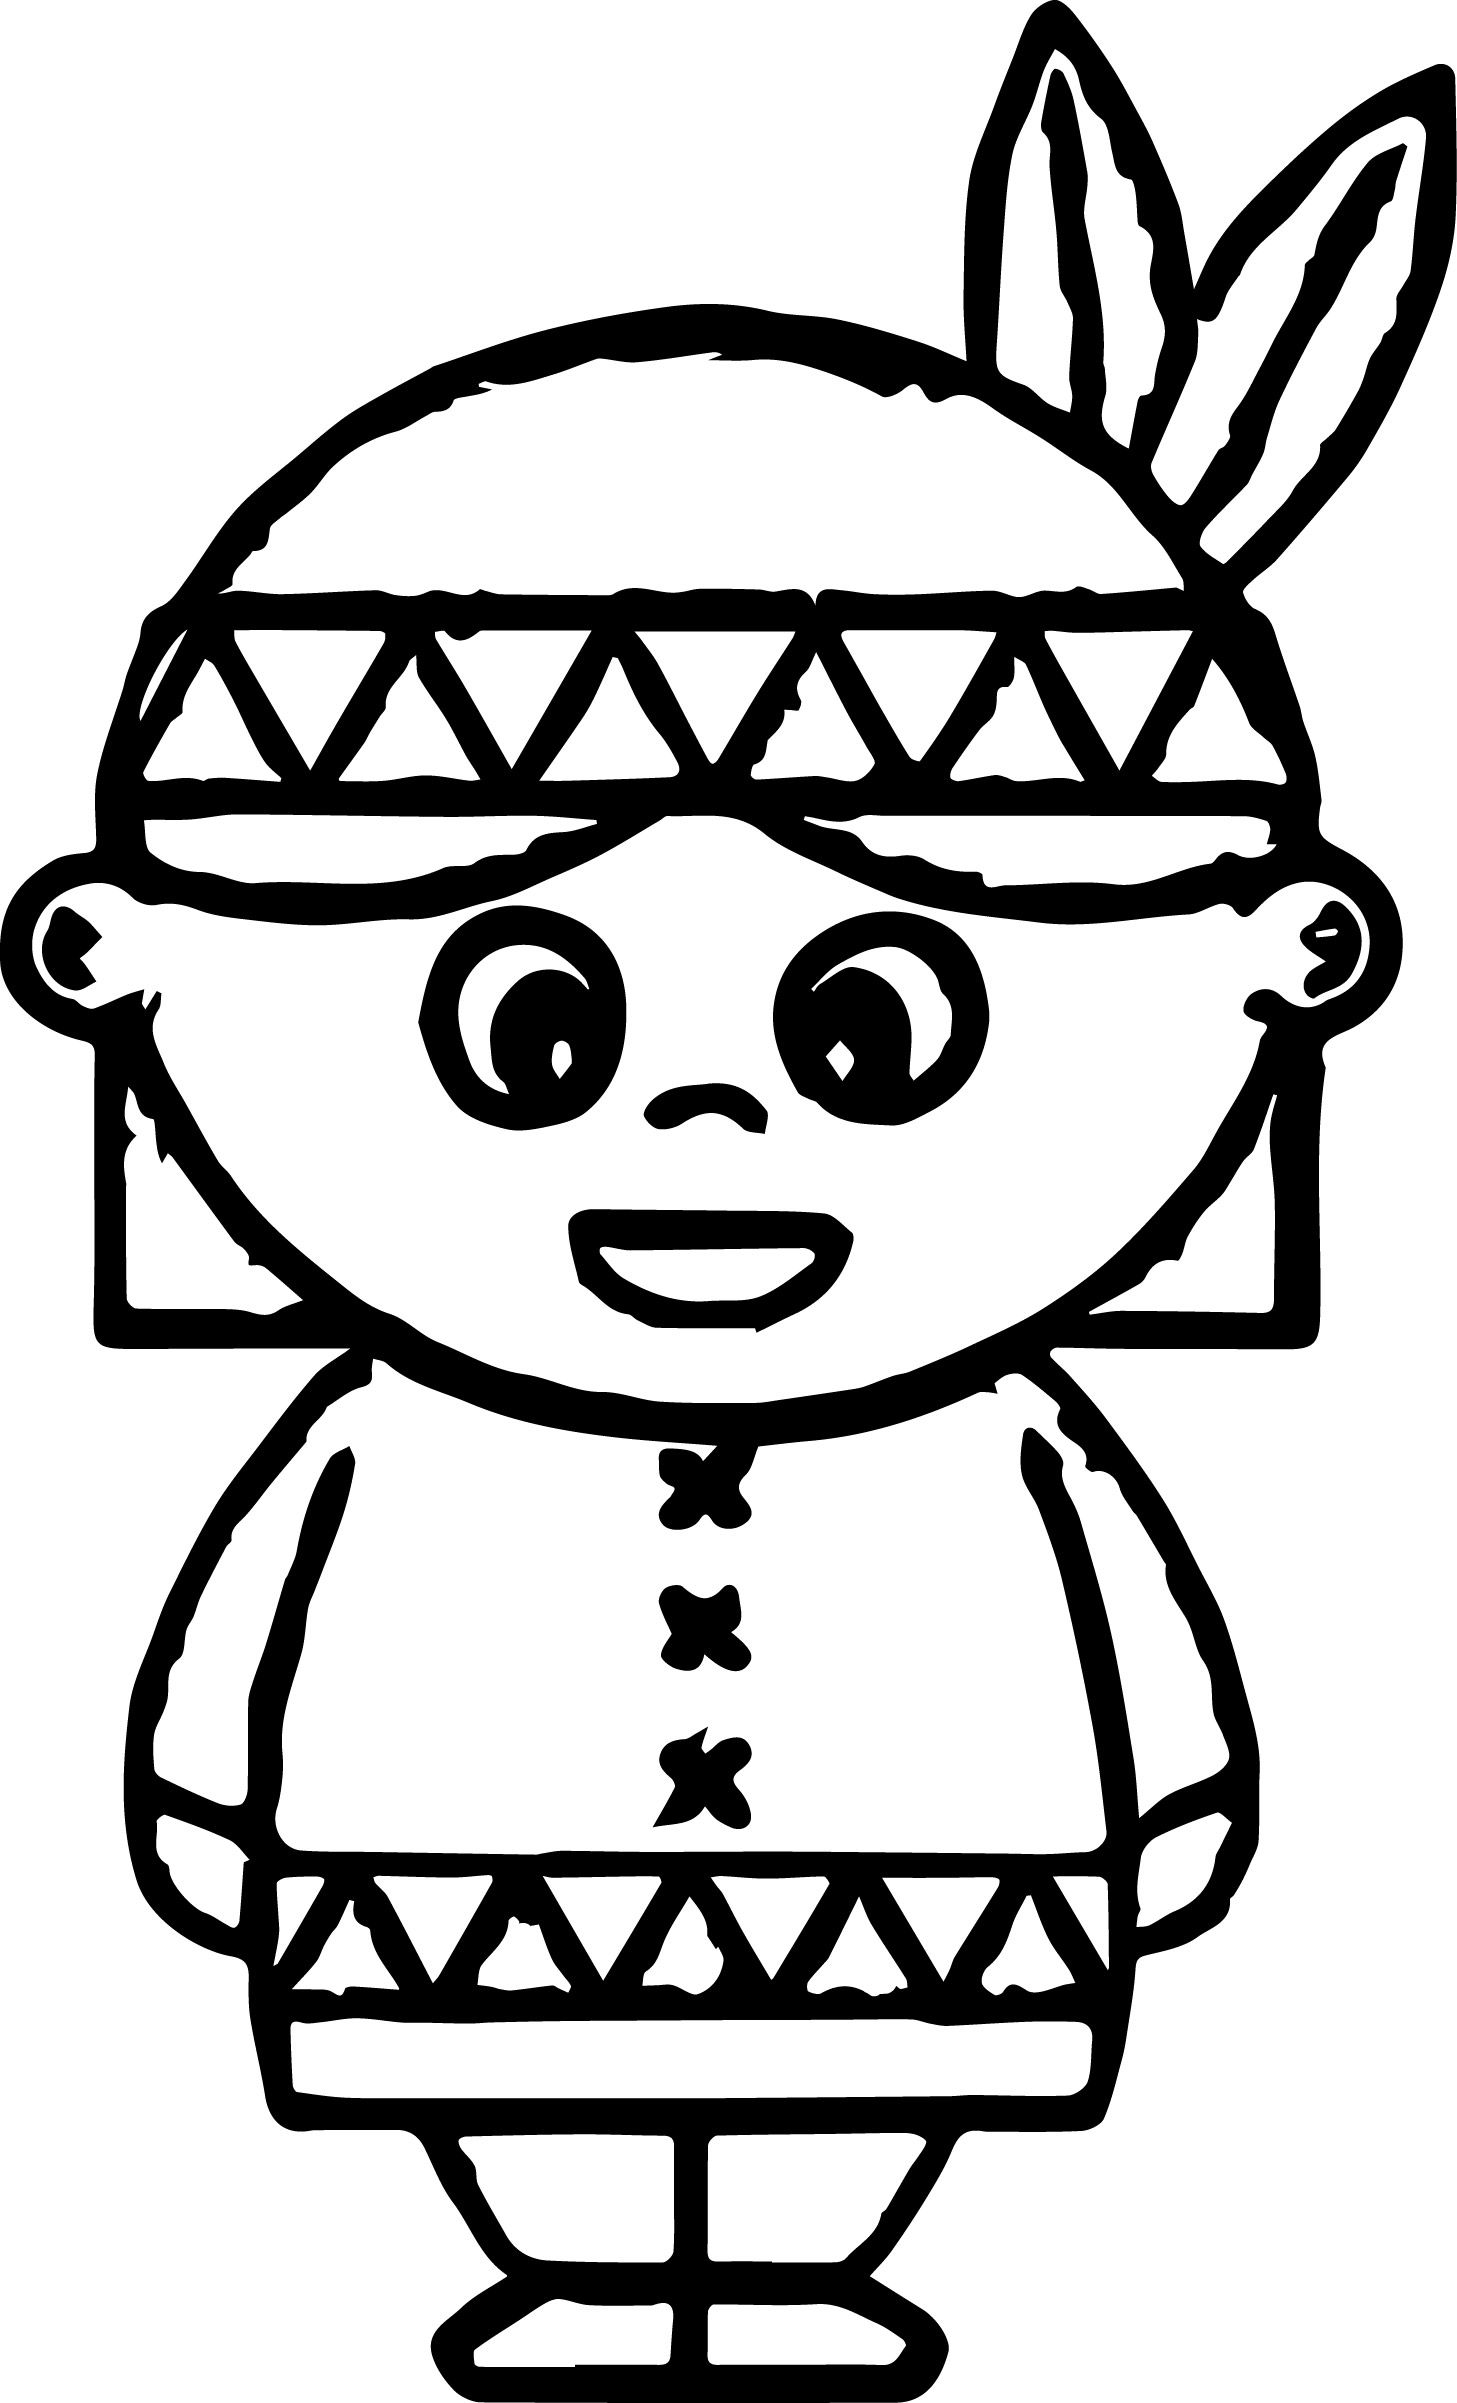 American Indian Coloring Pages | wecoloringpage | Pinterest ...